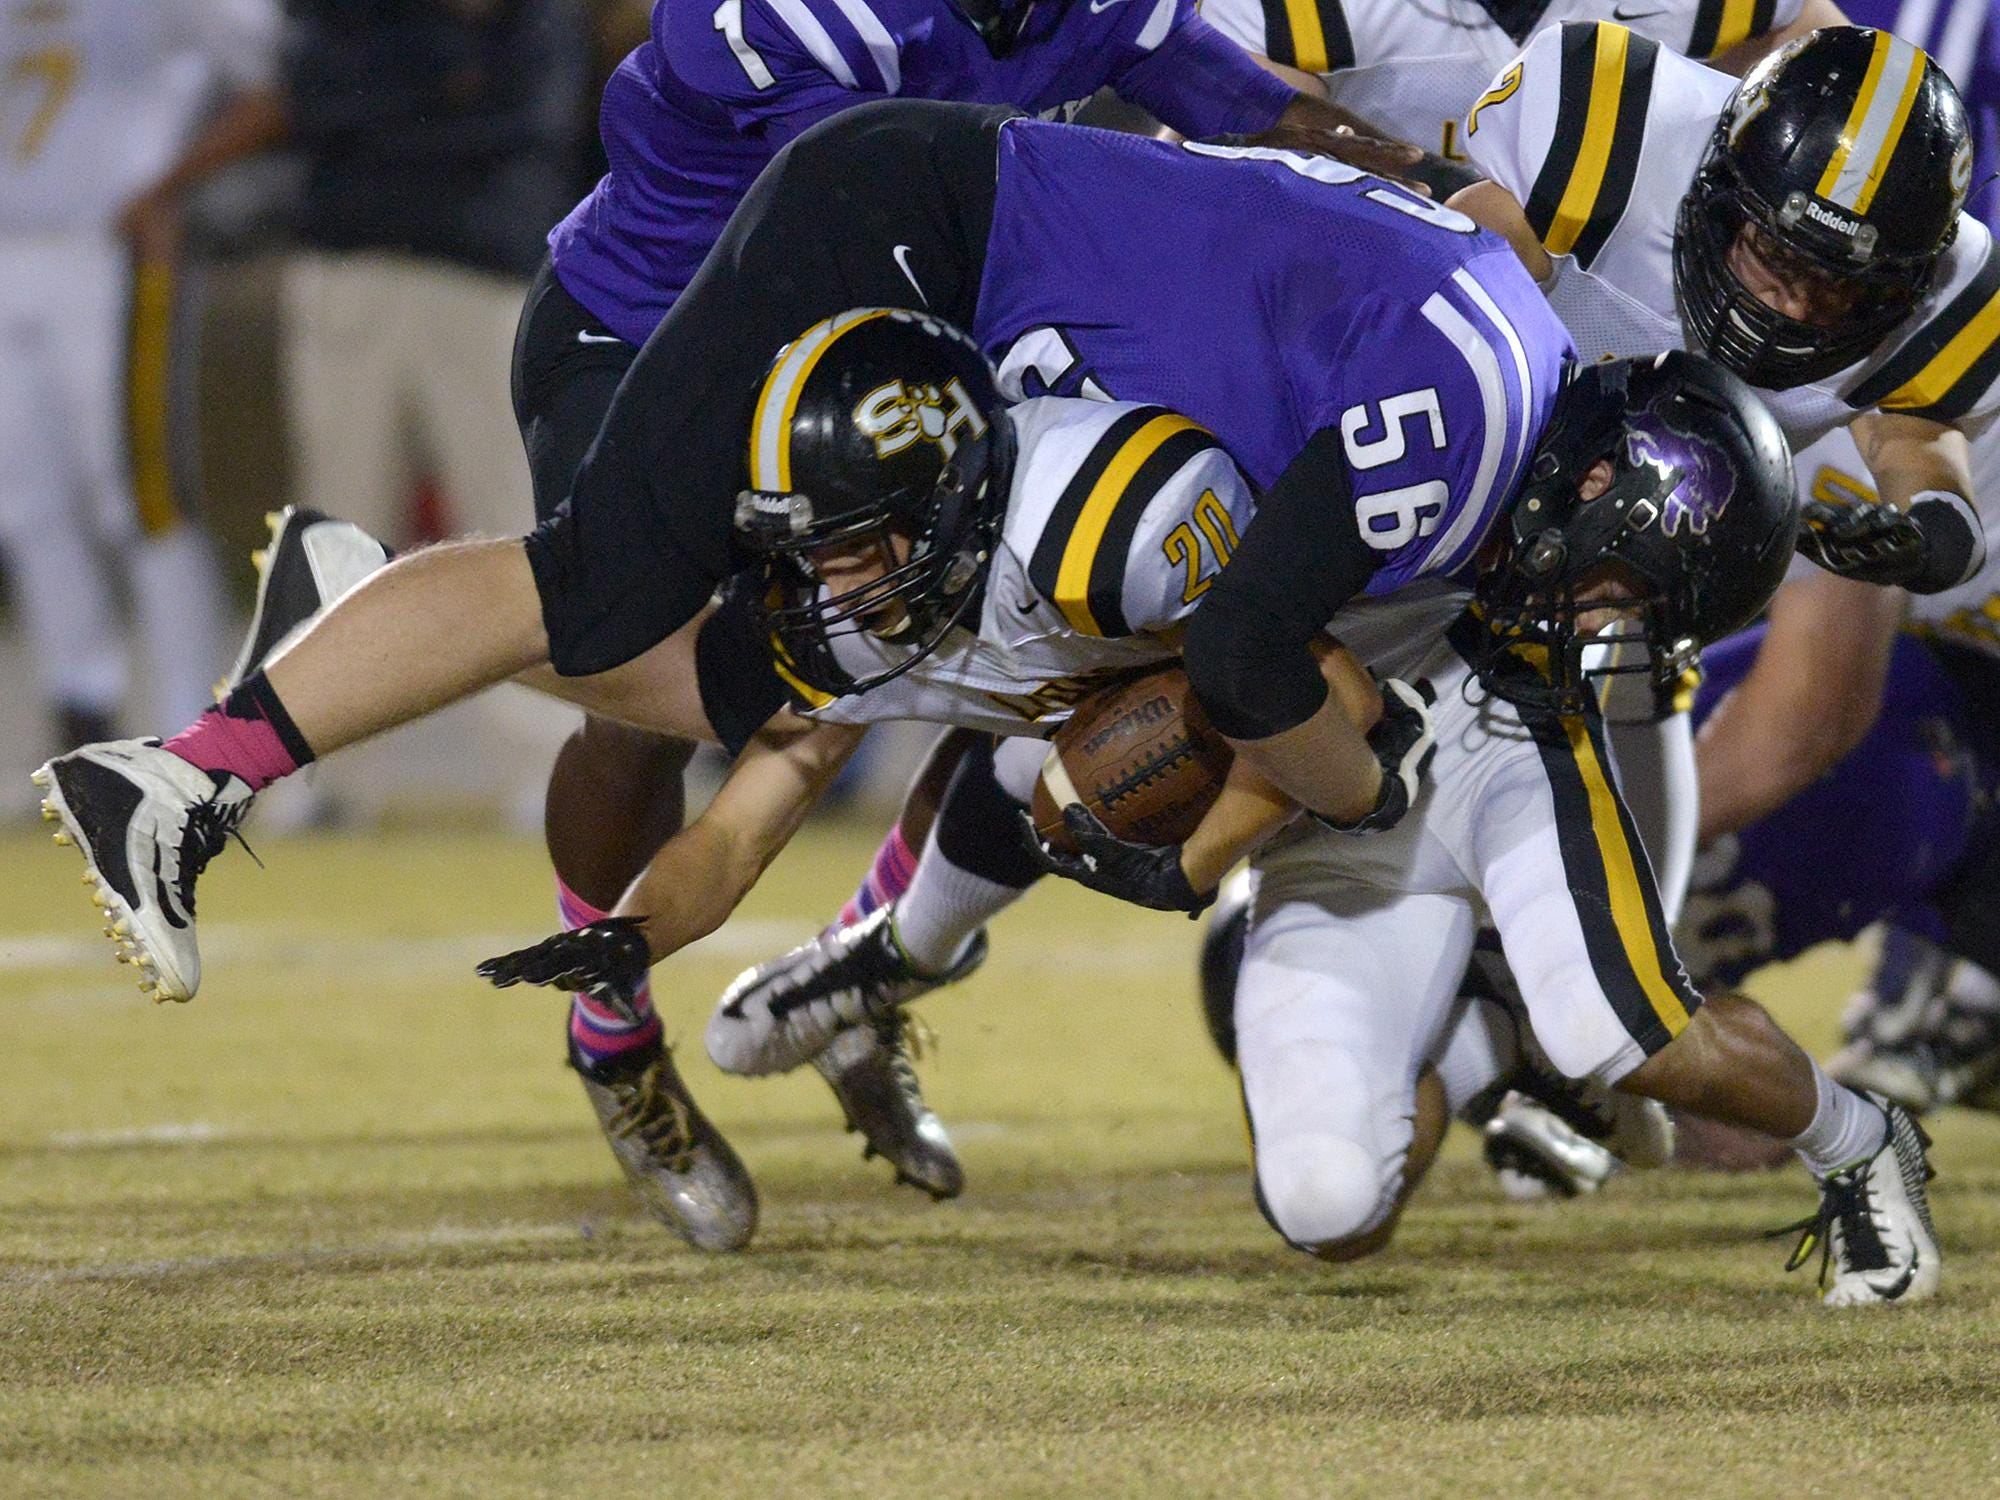 Trinity Christian Academy's Zachary Yarbrough (56) brings down Scotts Hill's Cody Holmes (20) at TCA on Friday.